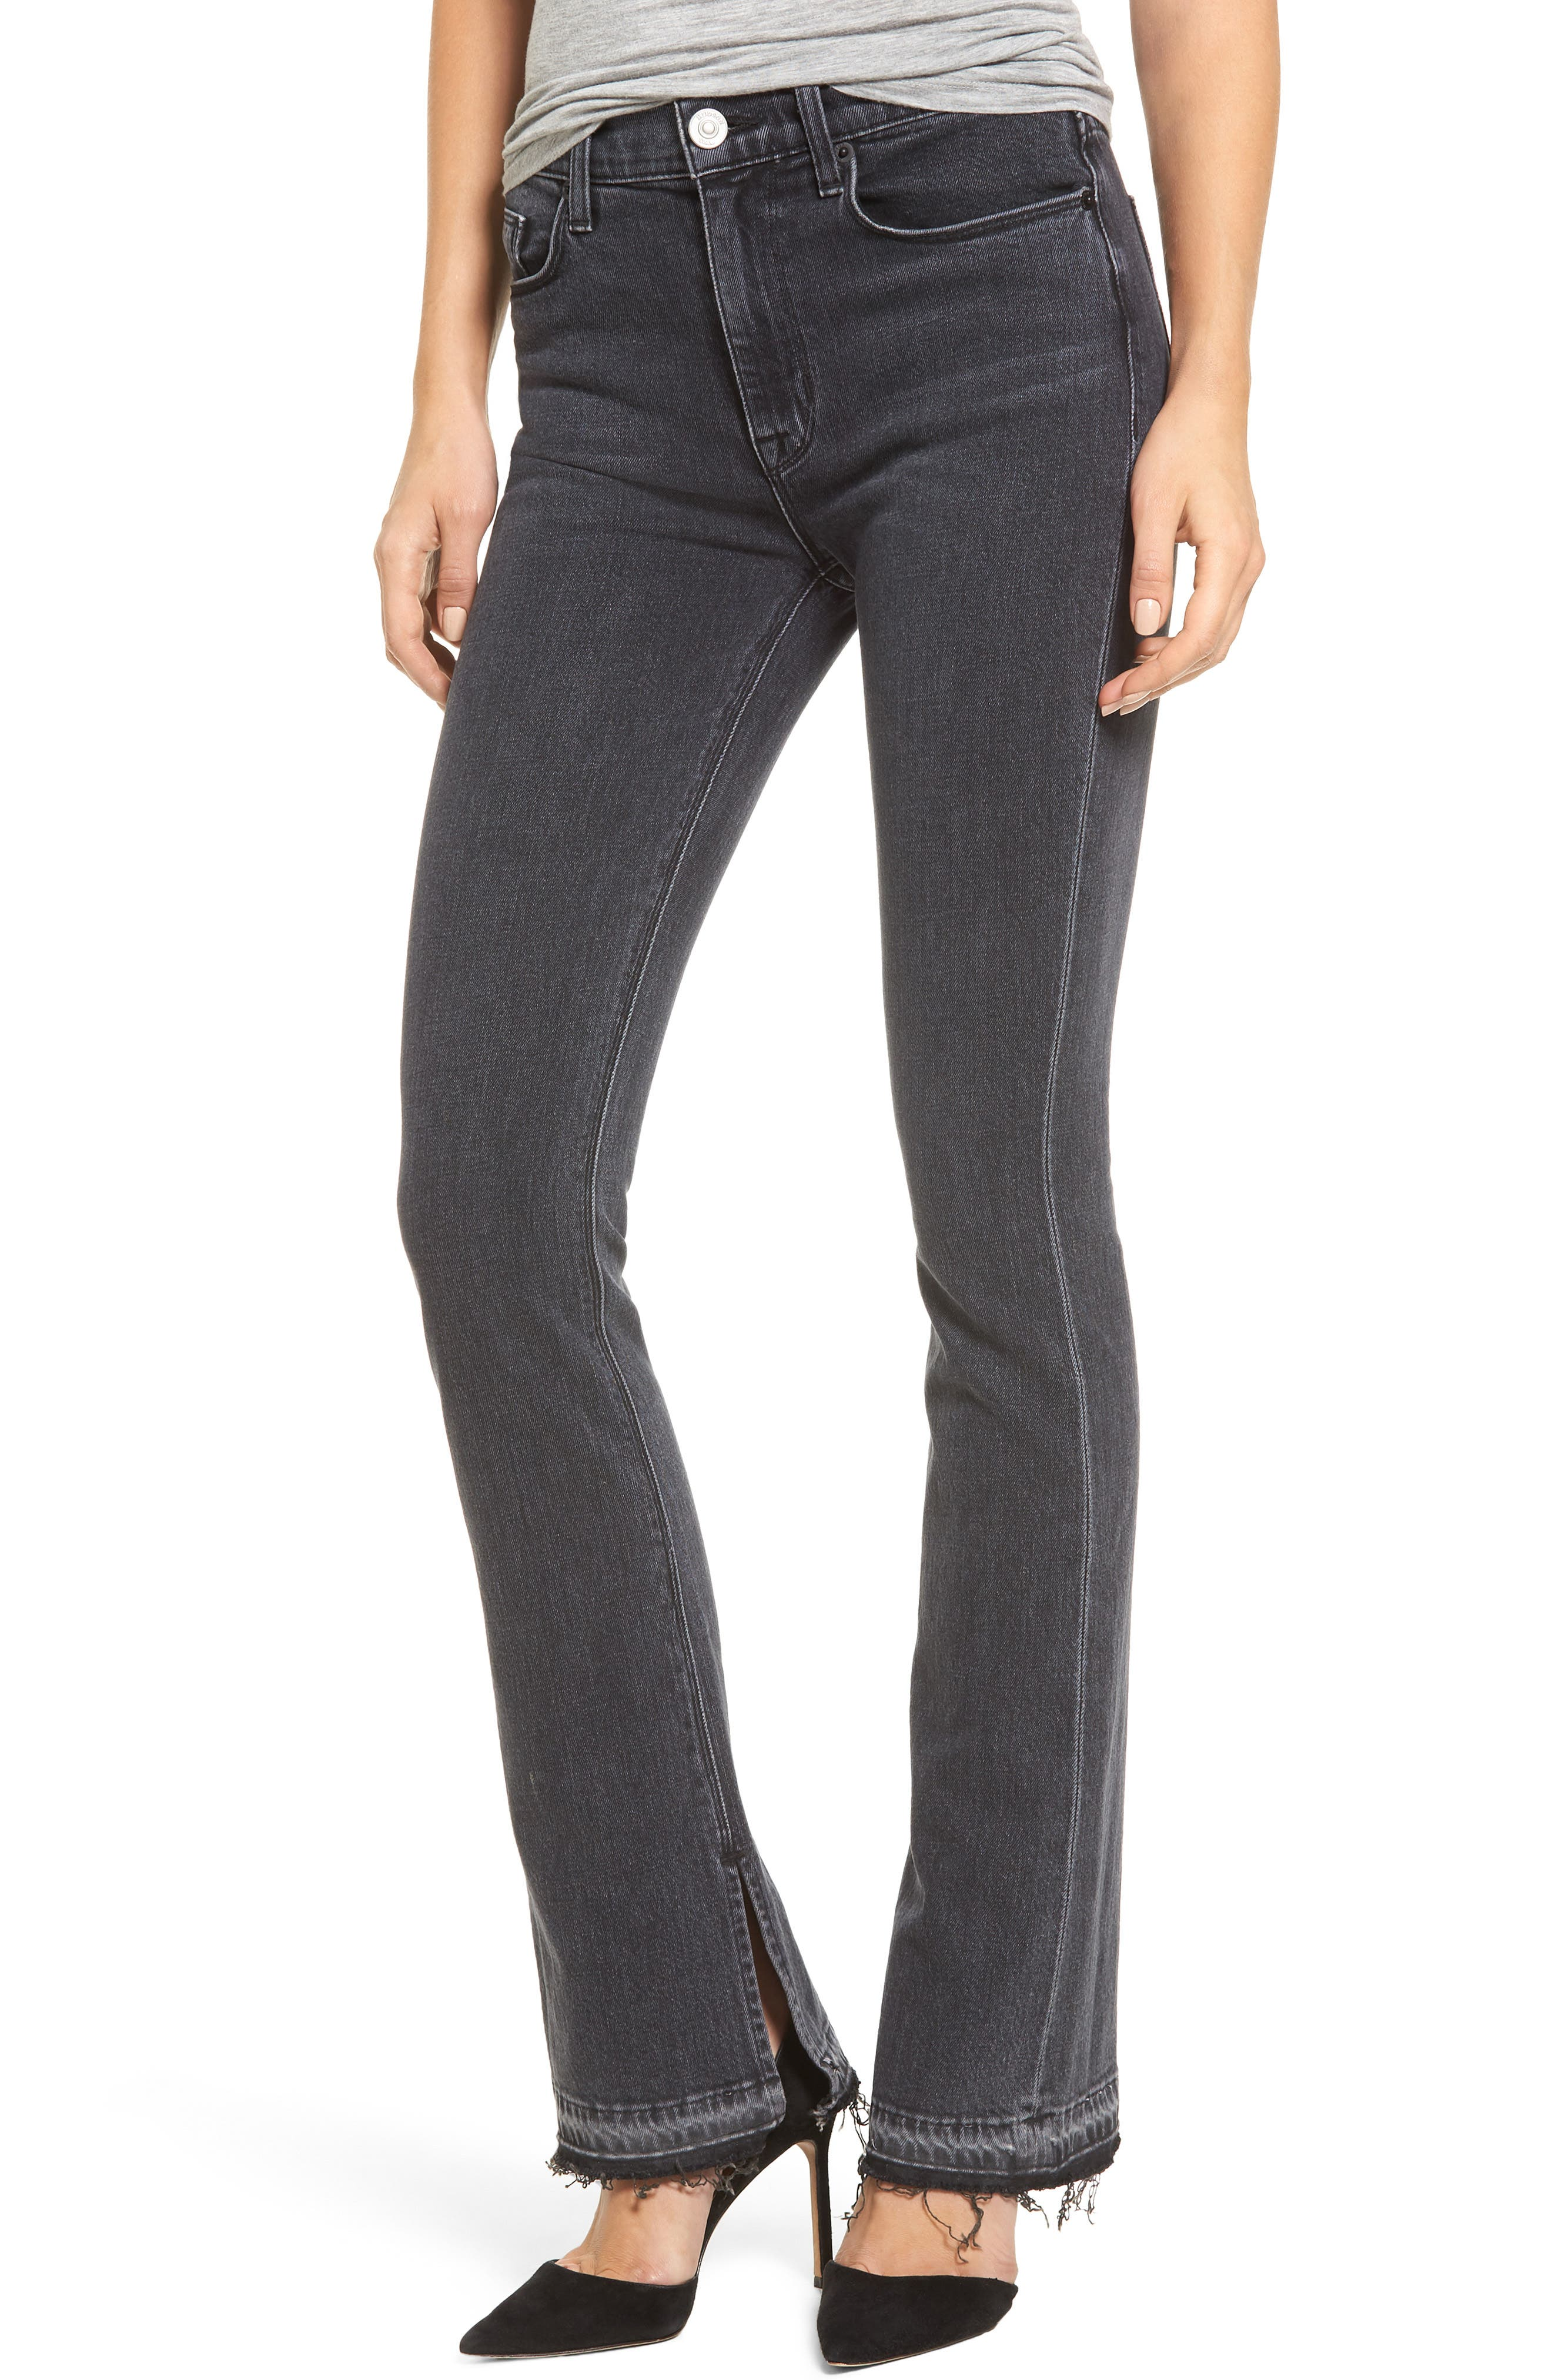 Alternate Image 1 Selected - Hudson Jeans Heartbreaker High Waist Bootcut Jeans (Cry Later)